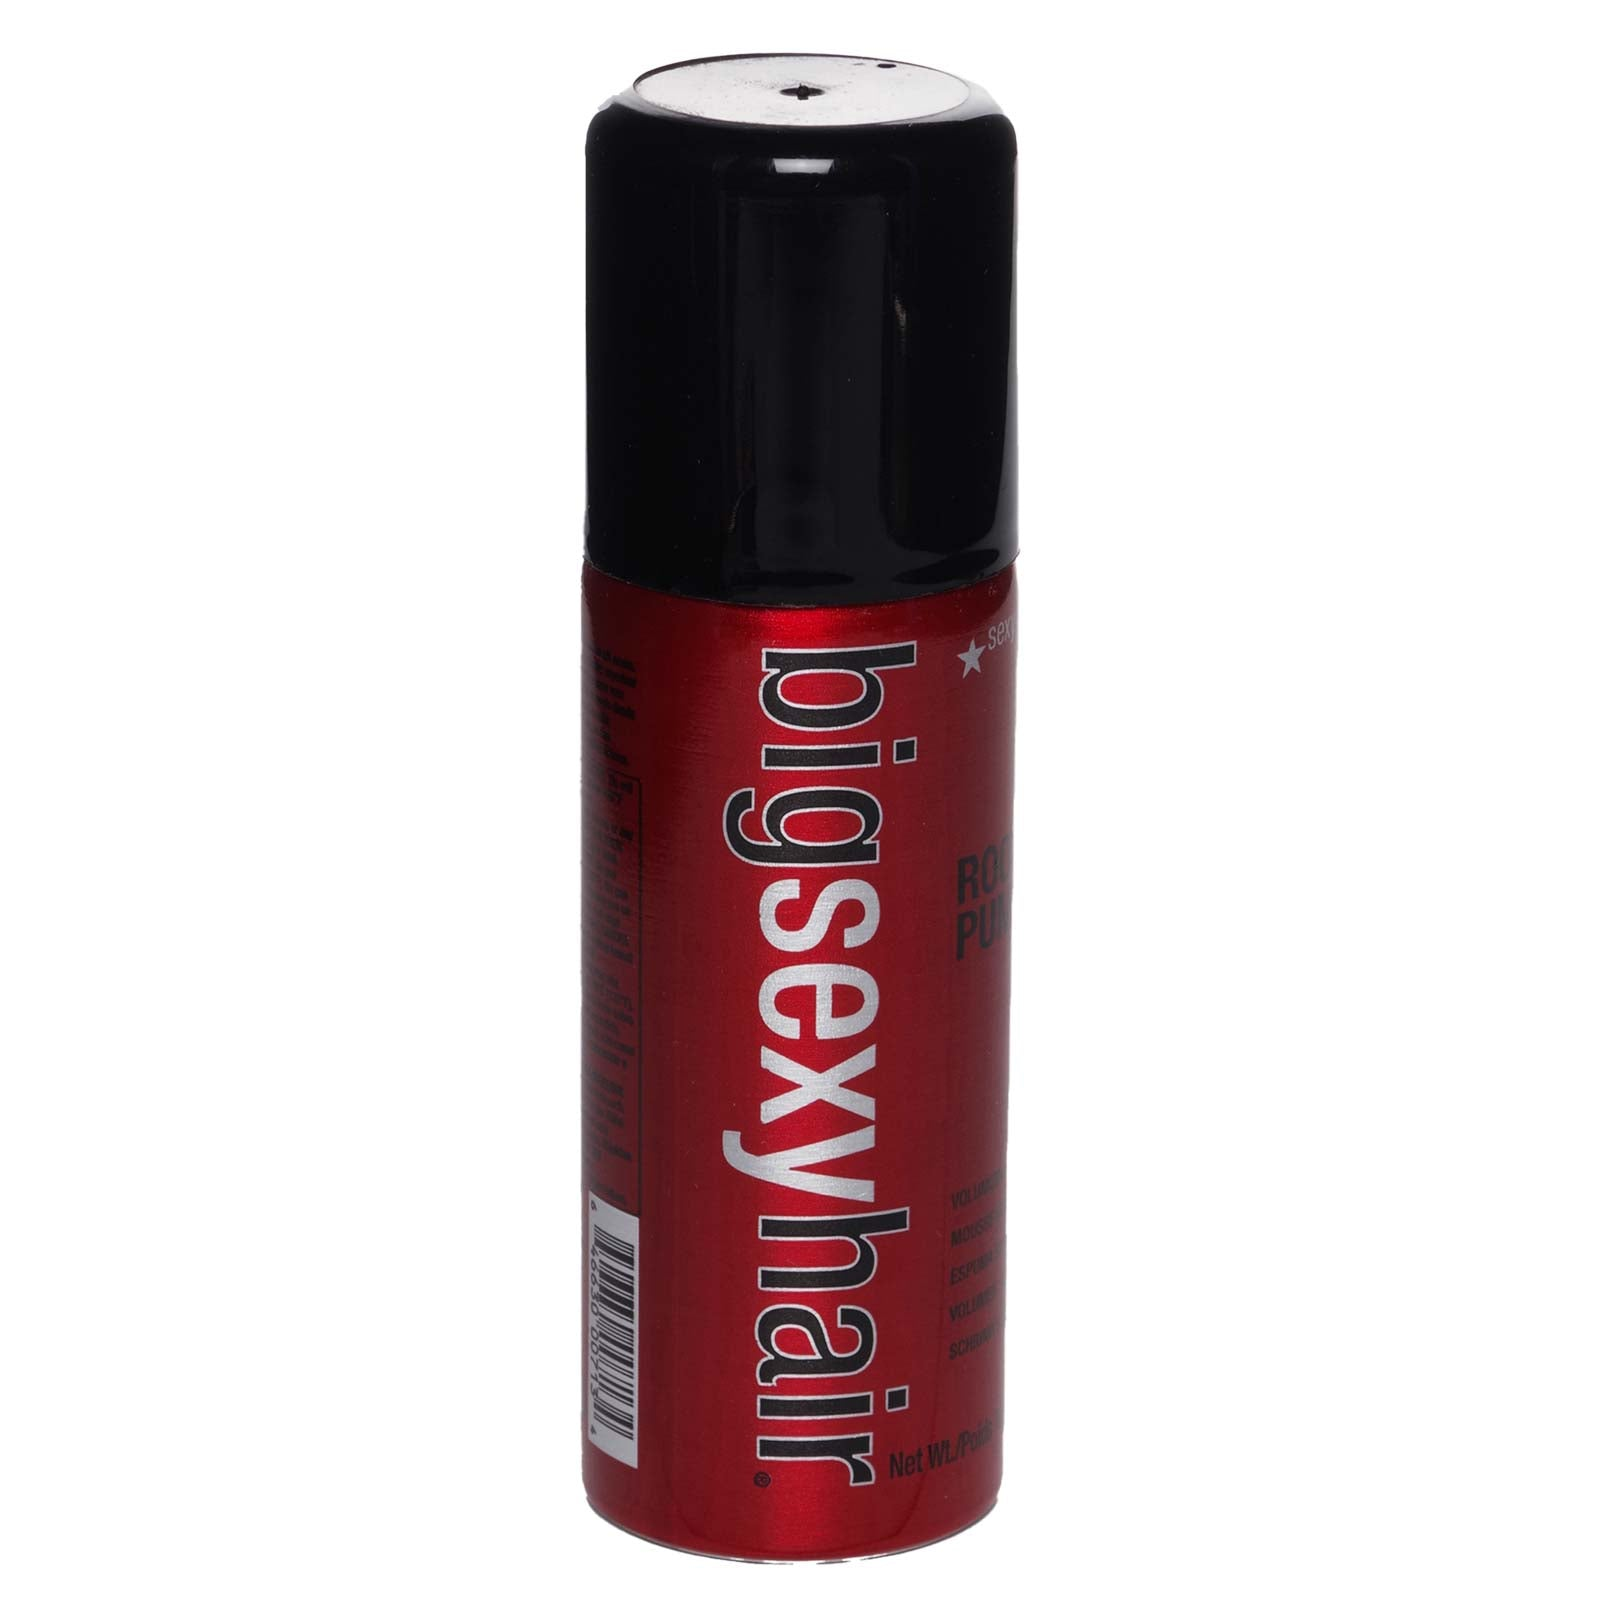 Sexy Hair MOUSSE SPRAY ROOT PUMP VOLUMIZING, creates big volume by pumping up your hair at the root. (1.6oz) (12/cs)